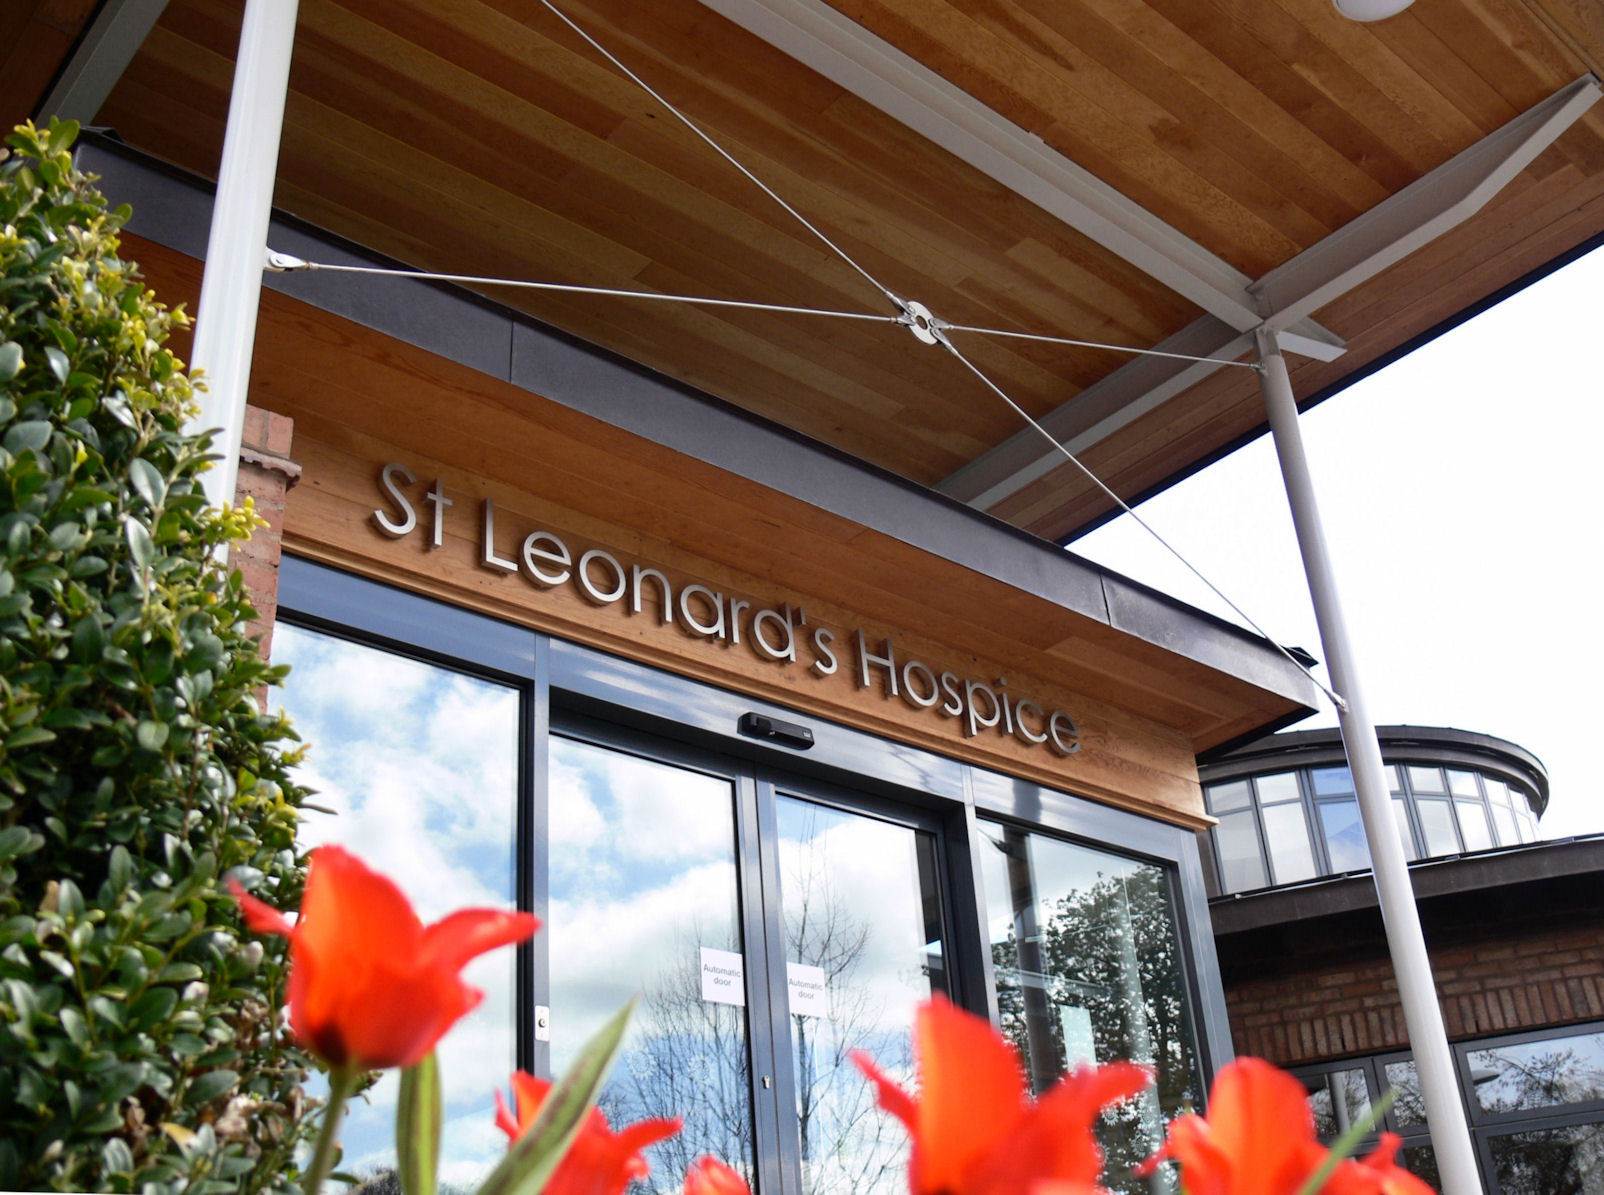 St Leonard's Hospice is hosting a free will-making event until May 20